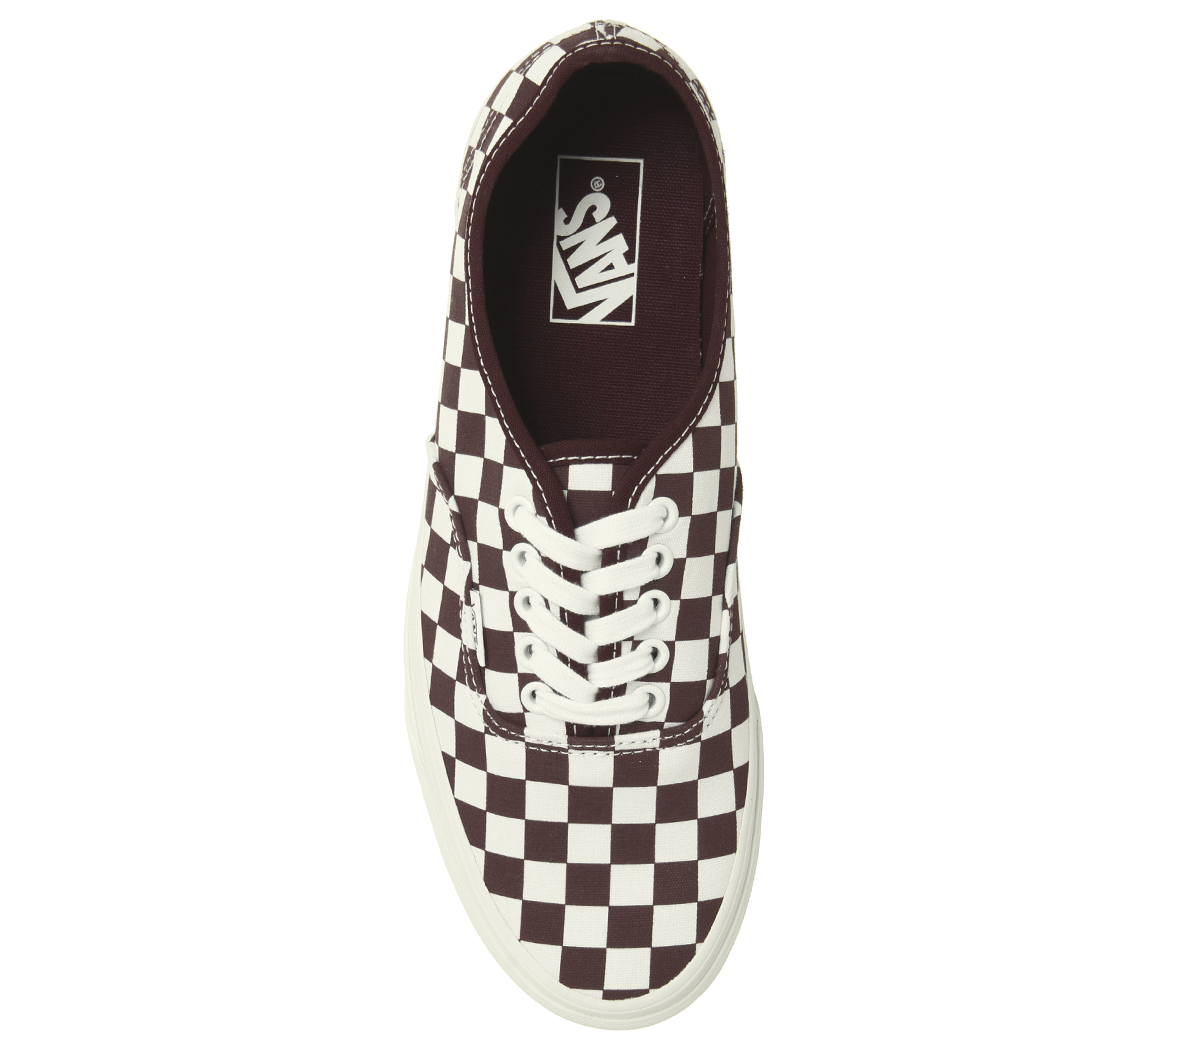 644005e3851f18 Sentinel Mens Vans Authentic Trainers Port Royale Marshmellow Checkerboard Trainers  Shoes